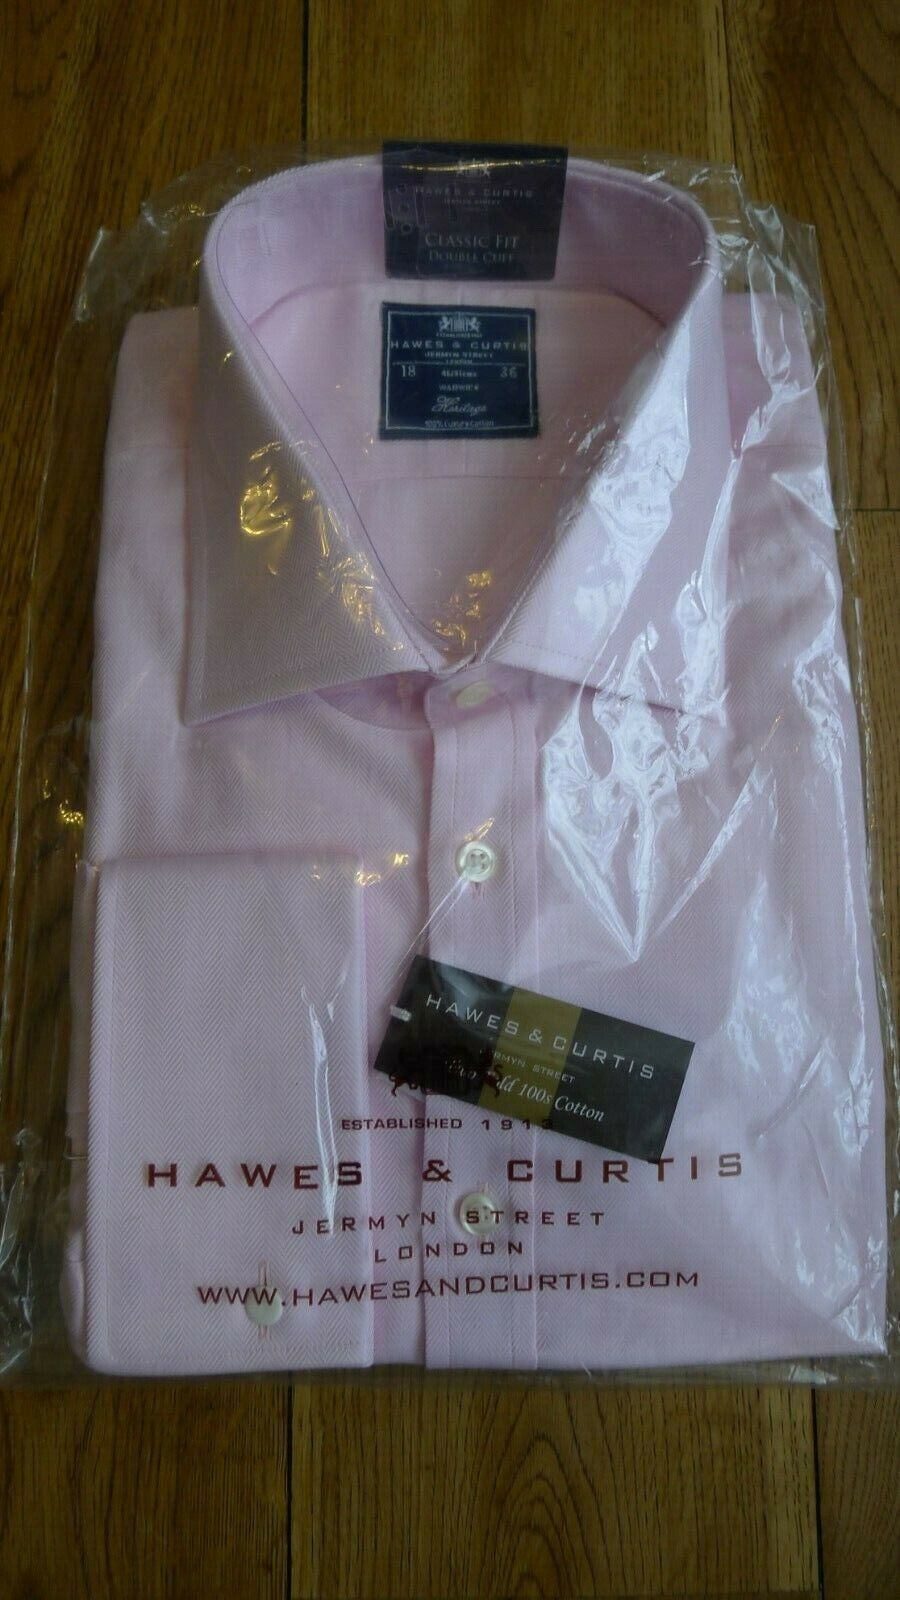 New Hawes & Curtis two fold cotton men's pink shirt collar 18 in chest 46 in